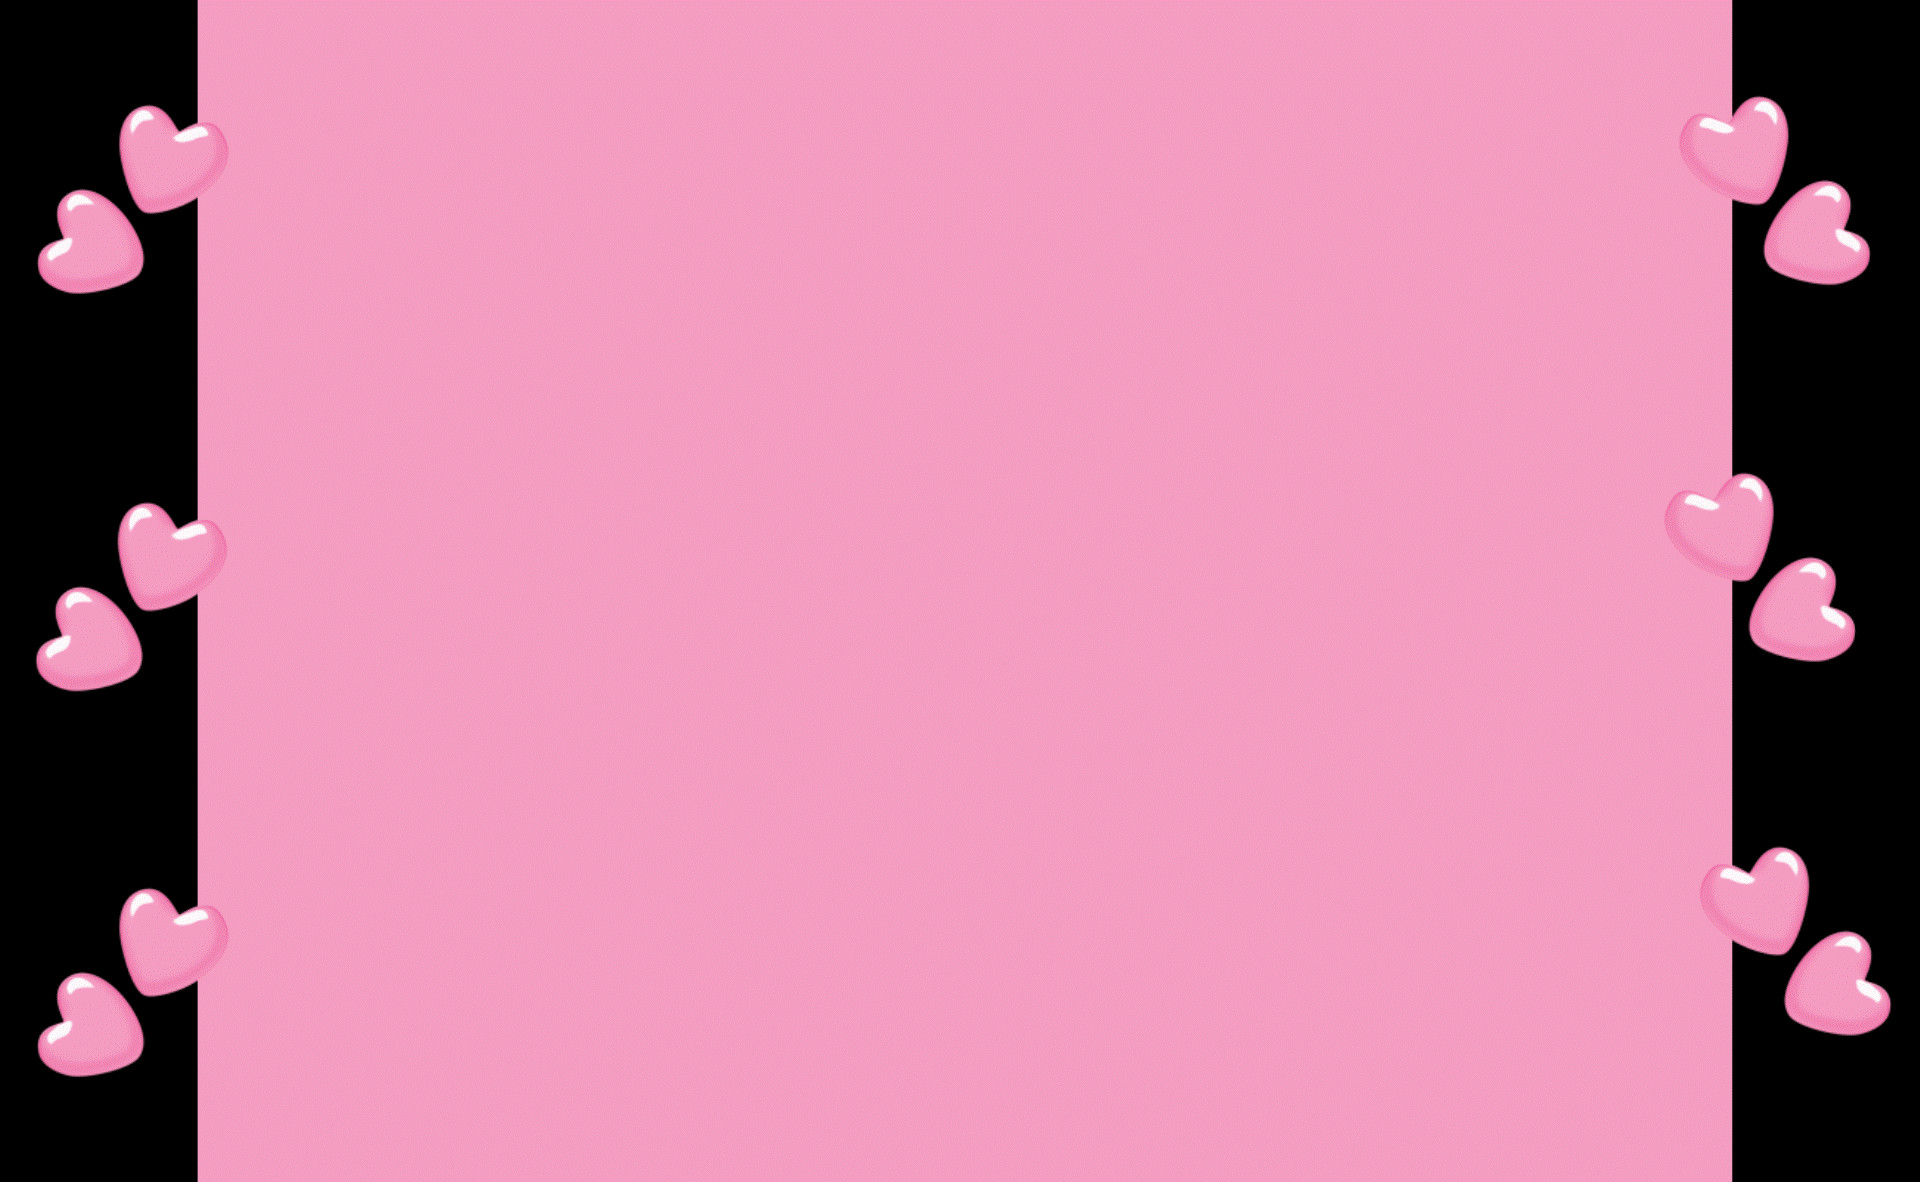 Download Wallpaper Hello Kitty Plain - 931462-full-size-cute-plain-backgrounds-1920x1182-for-mac  Picture_33308.jpg